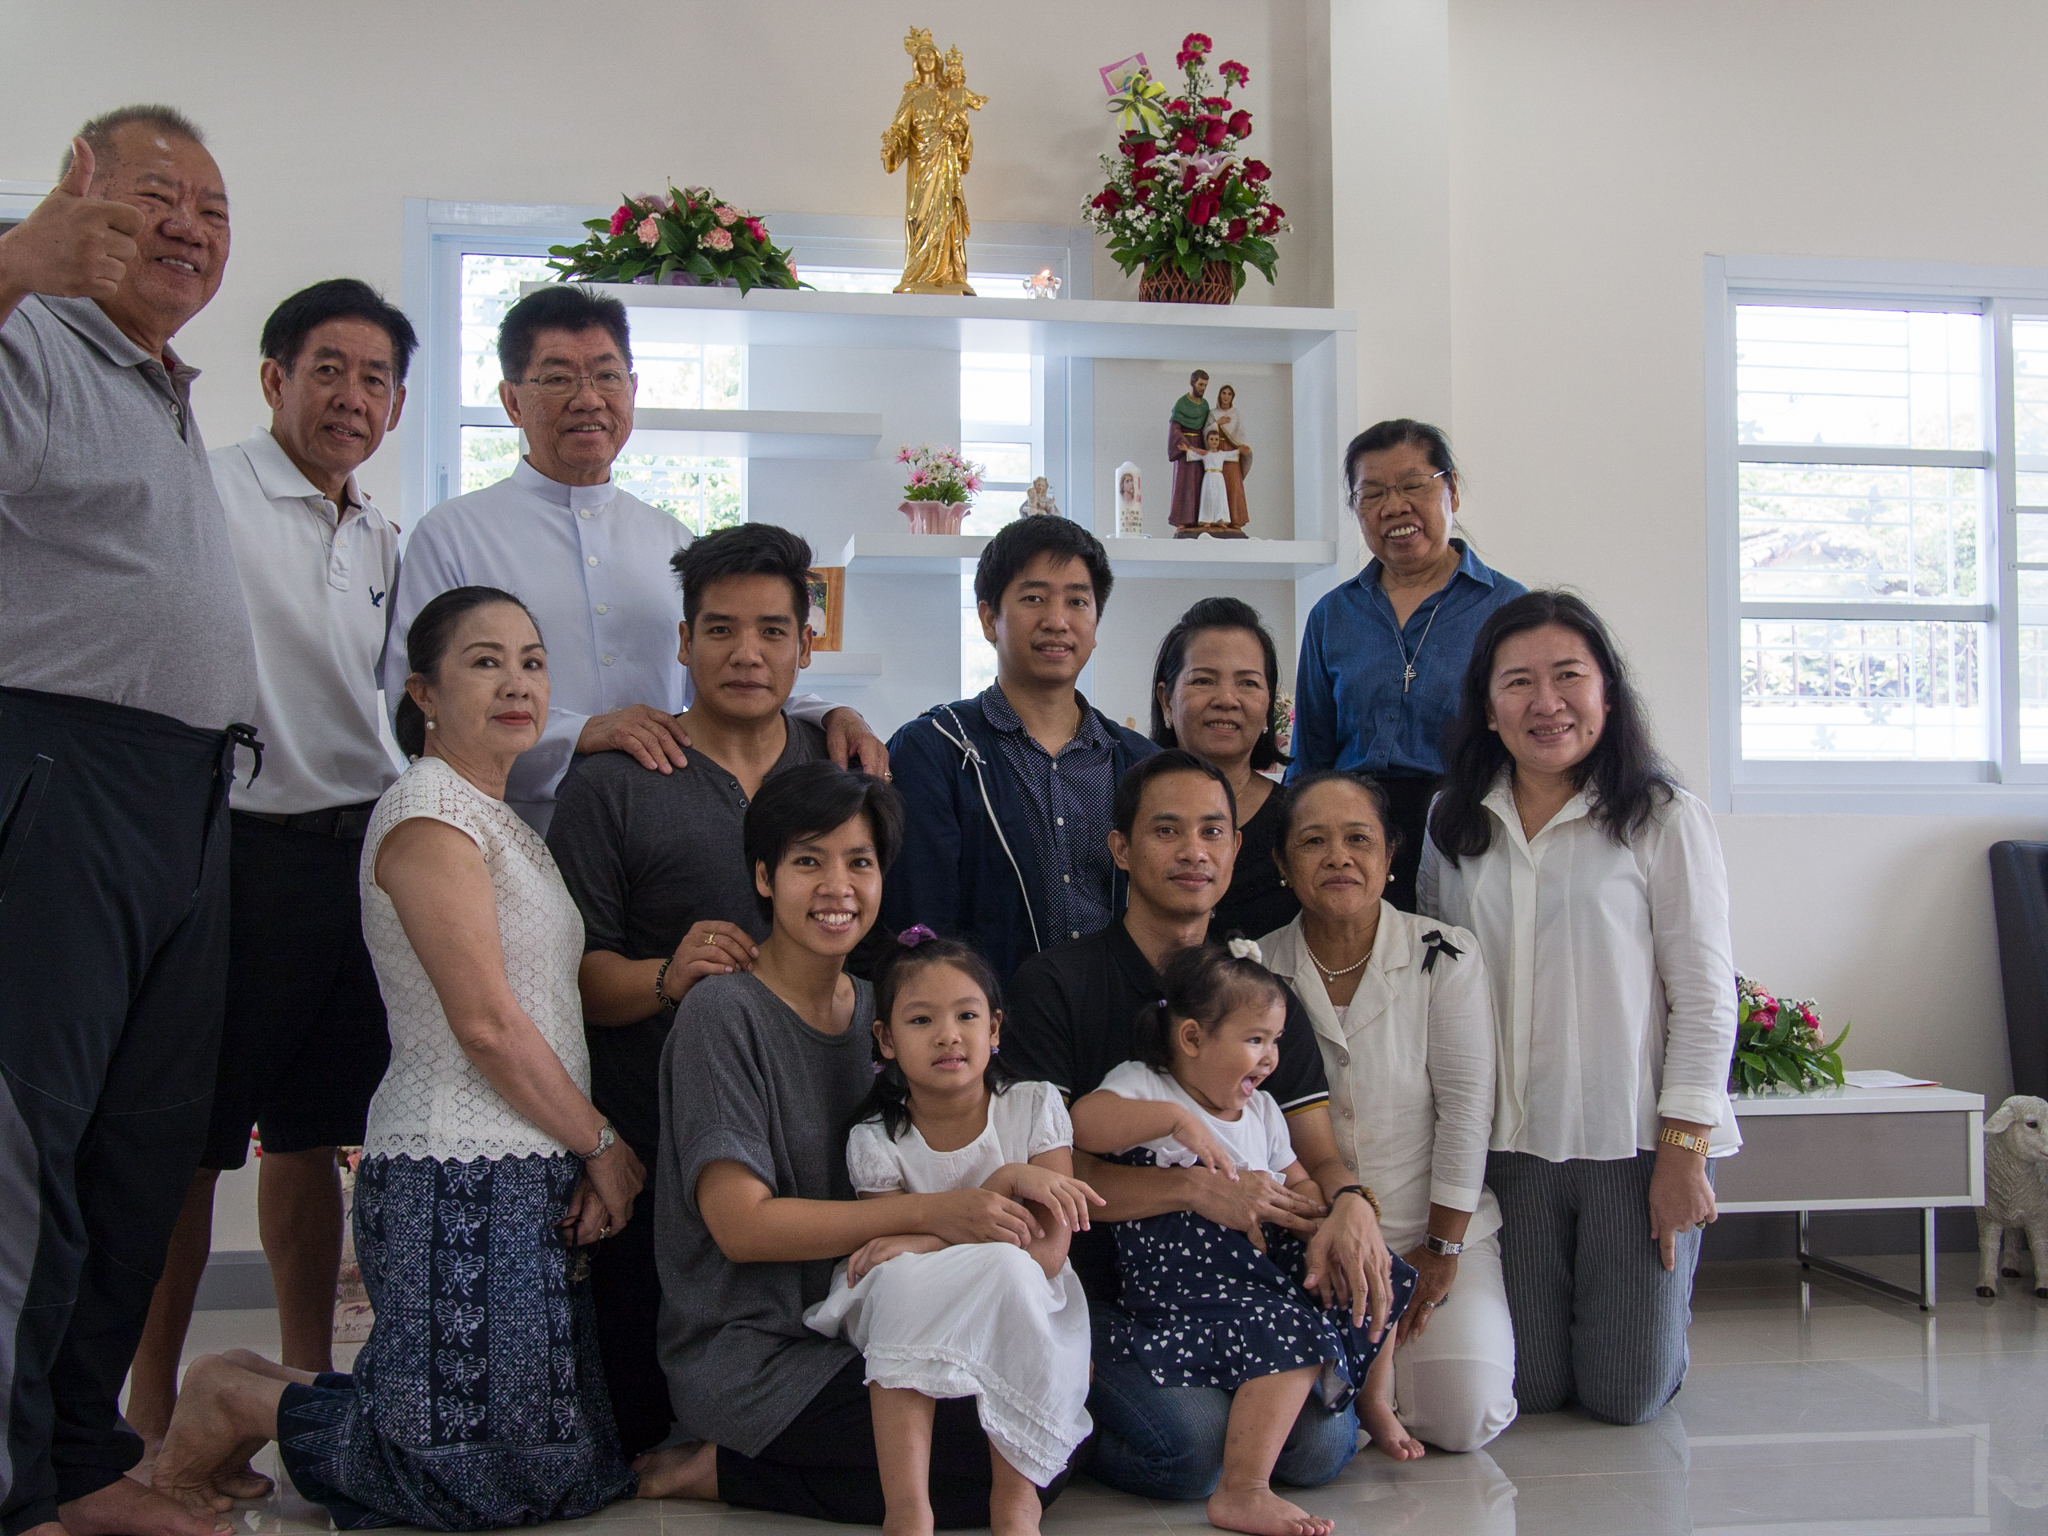 Sr. Pranee, her brothers, and Koo Kate's family